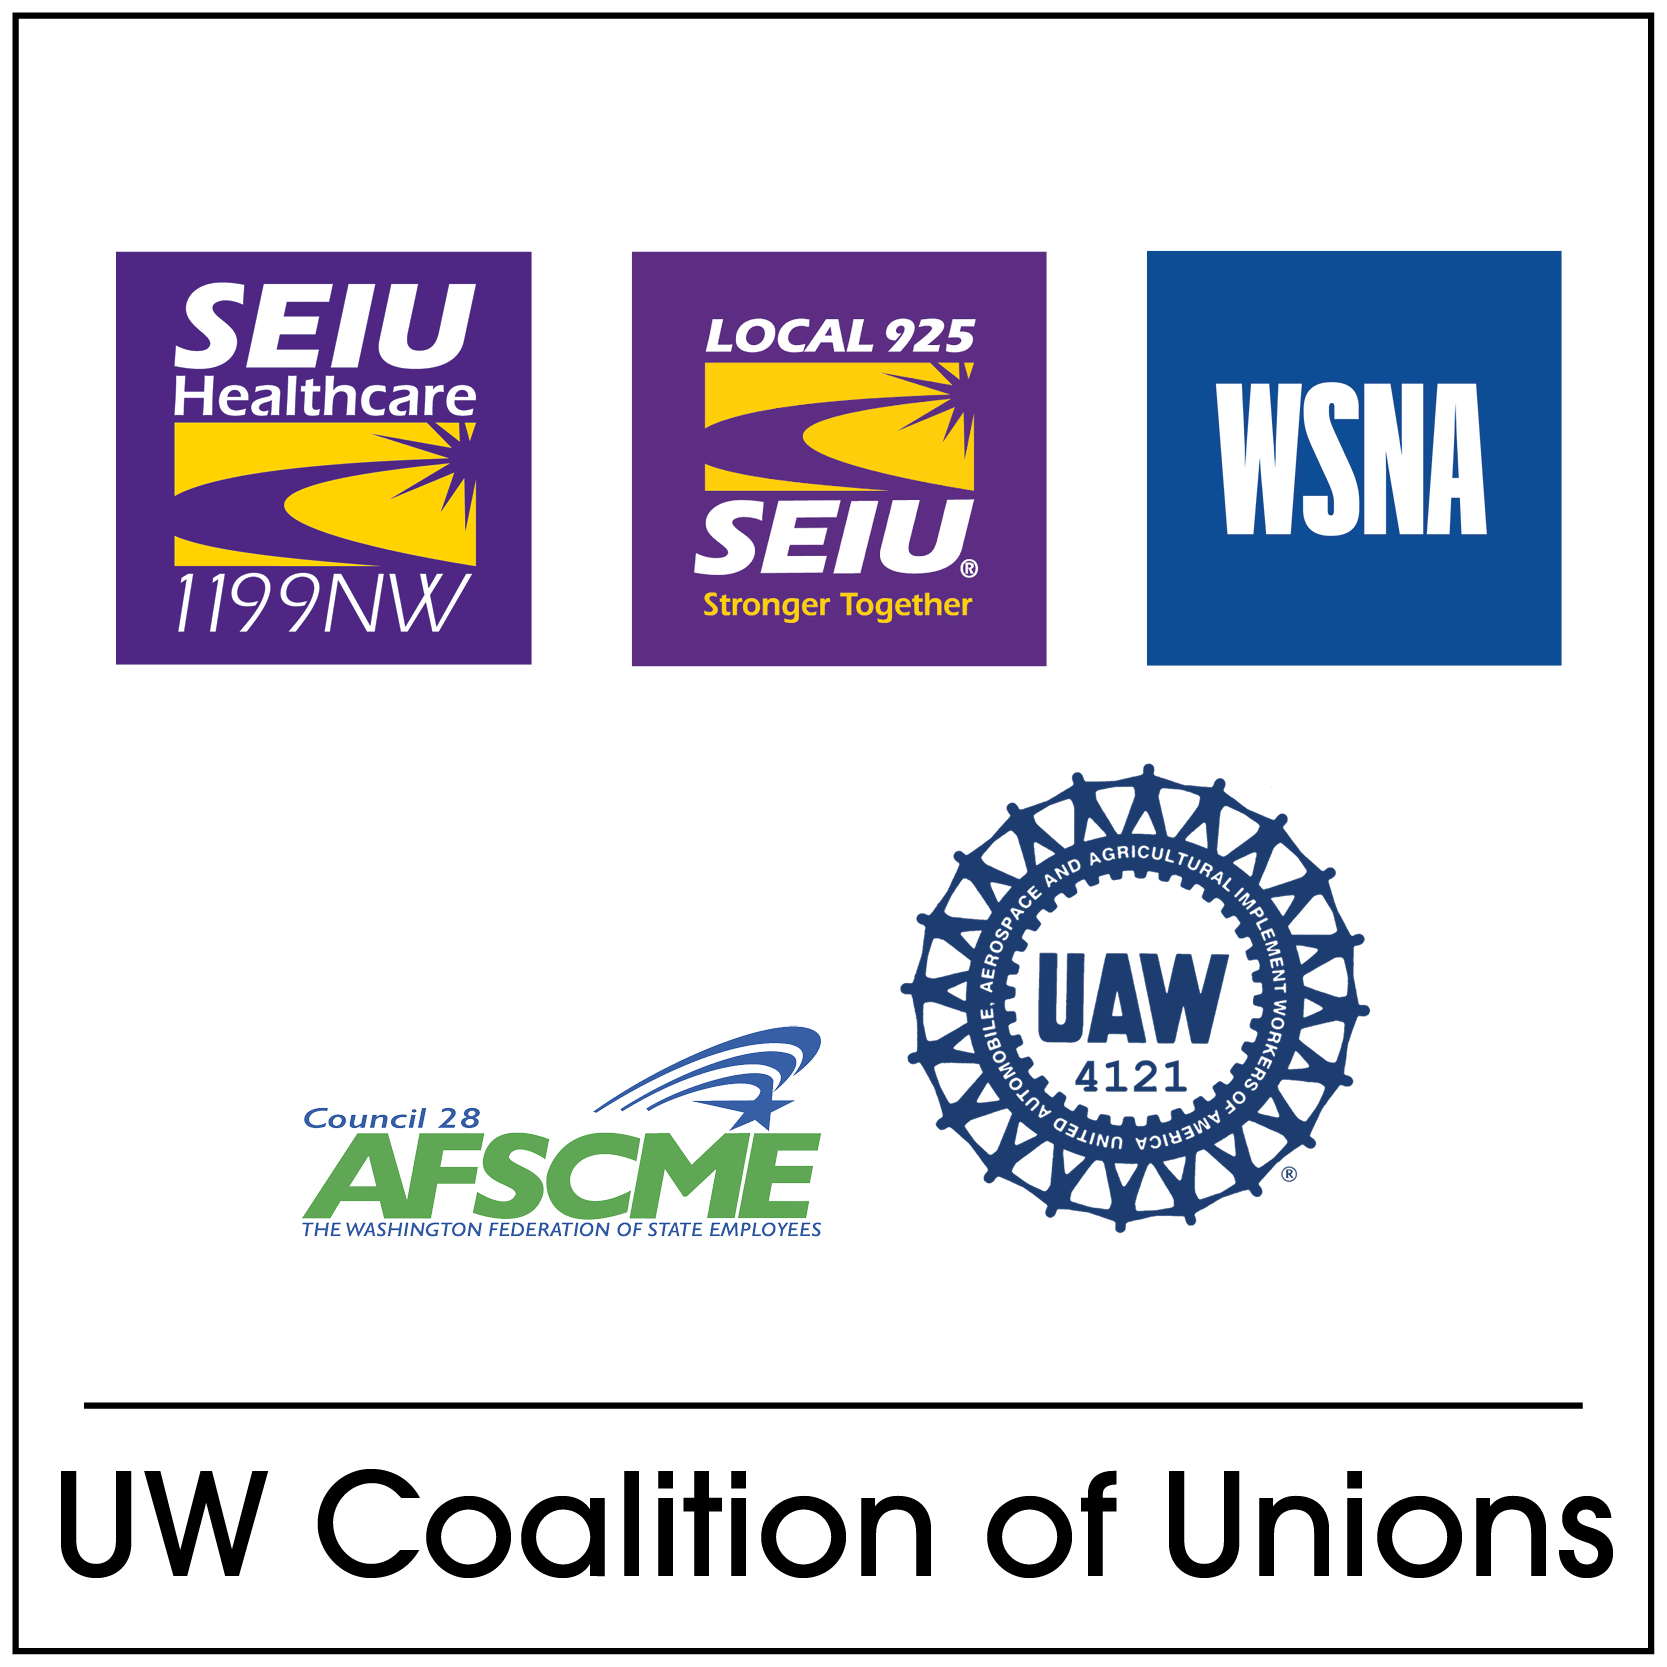 Washington Federation of State Employees (WFSE)